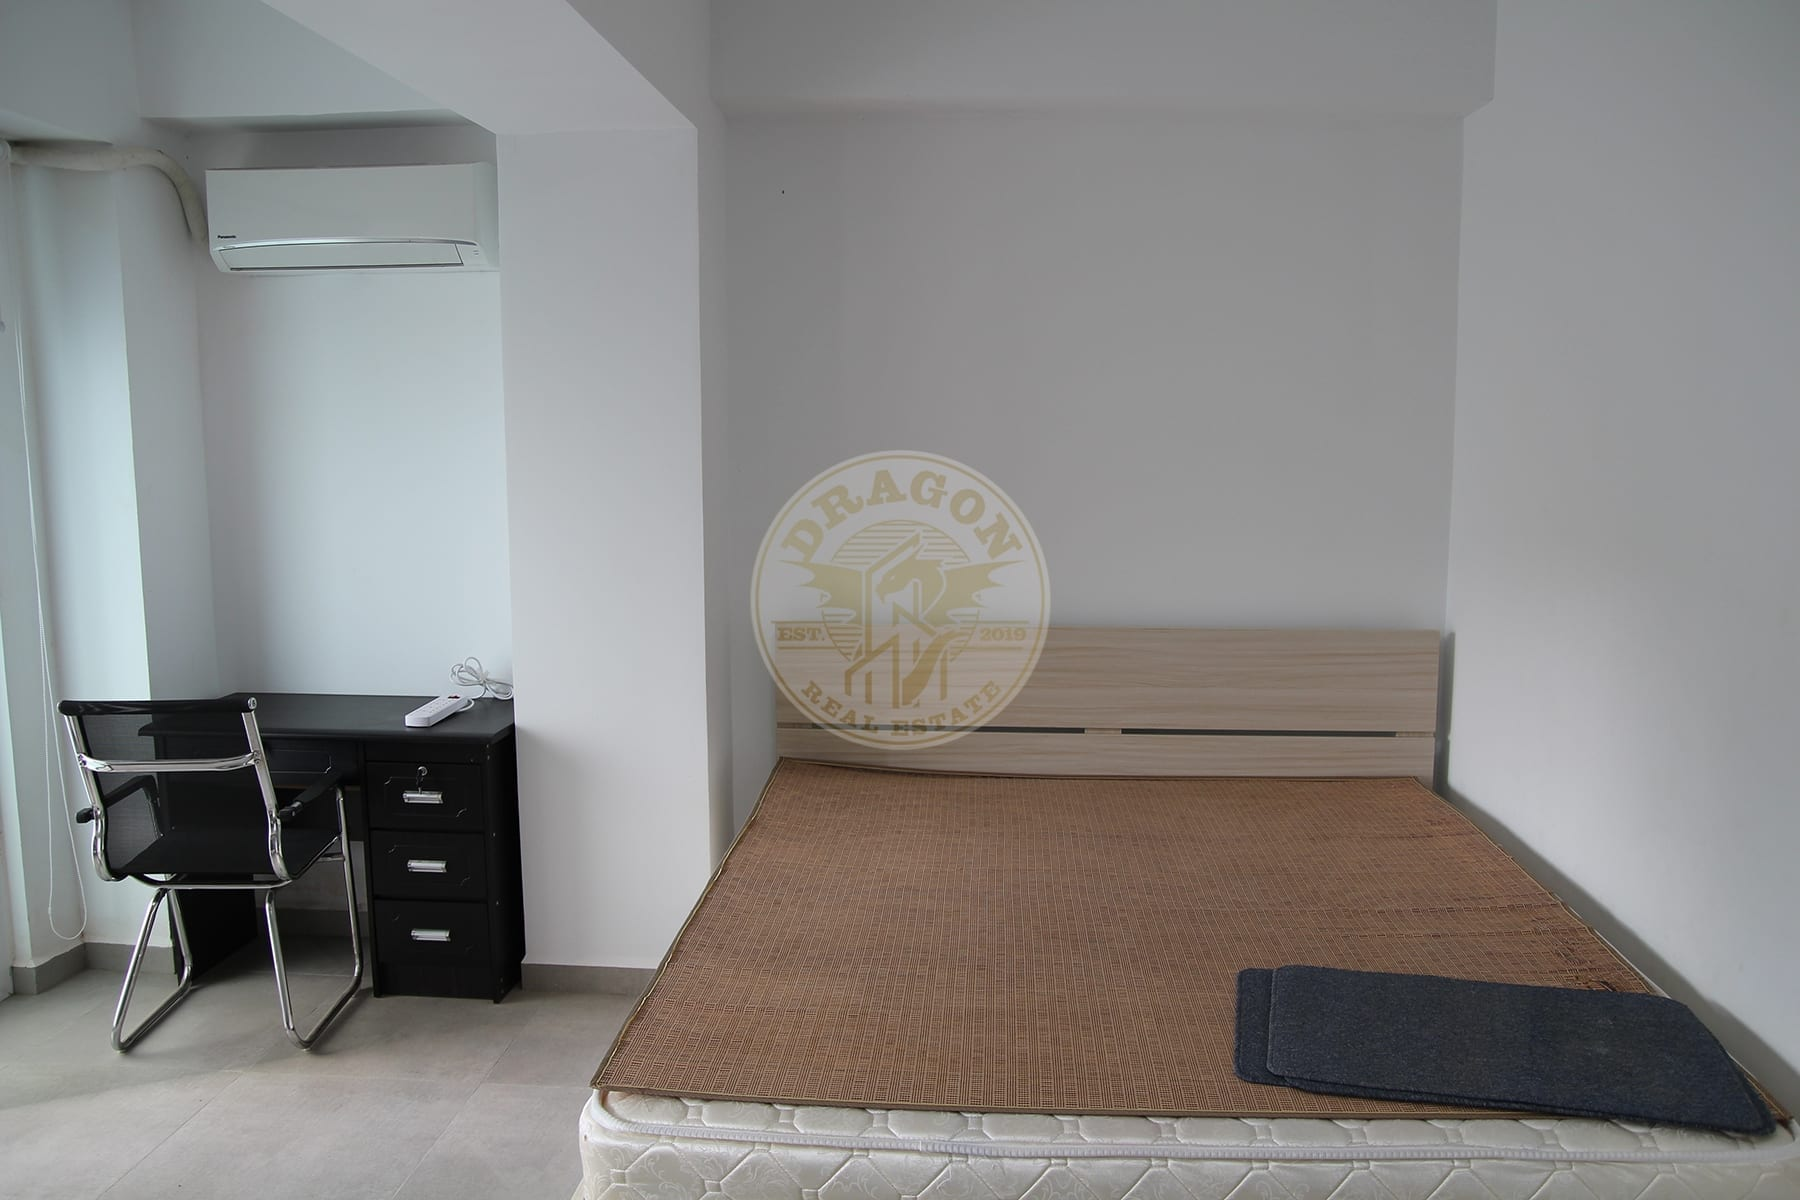 City Outside. Tranquility Inside. Studio for Rent in Sihanoukville. Sihanoukville Cambodia Property Sale